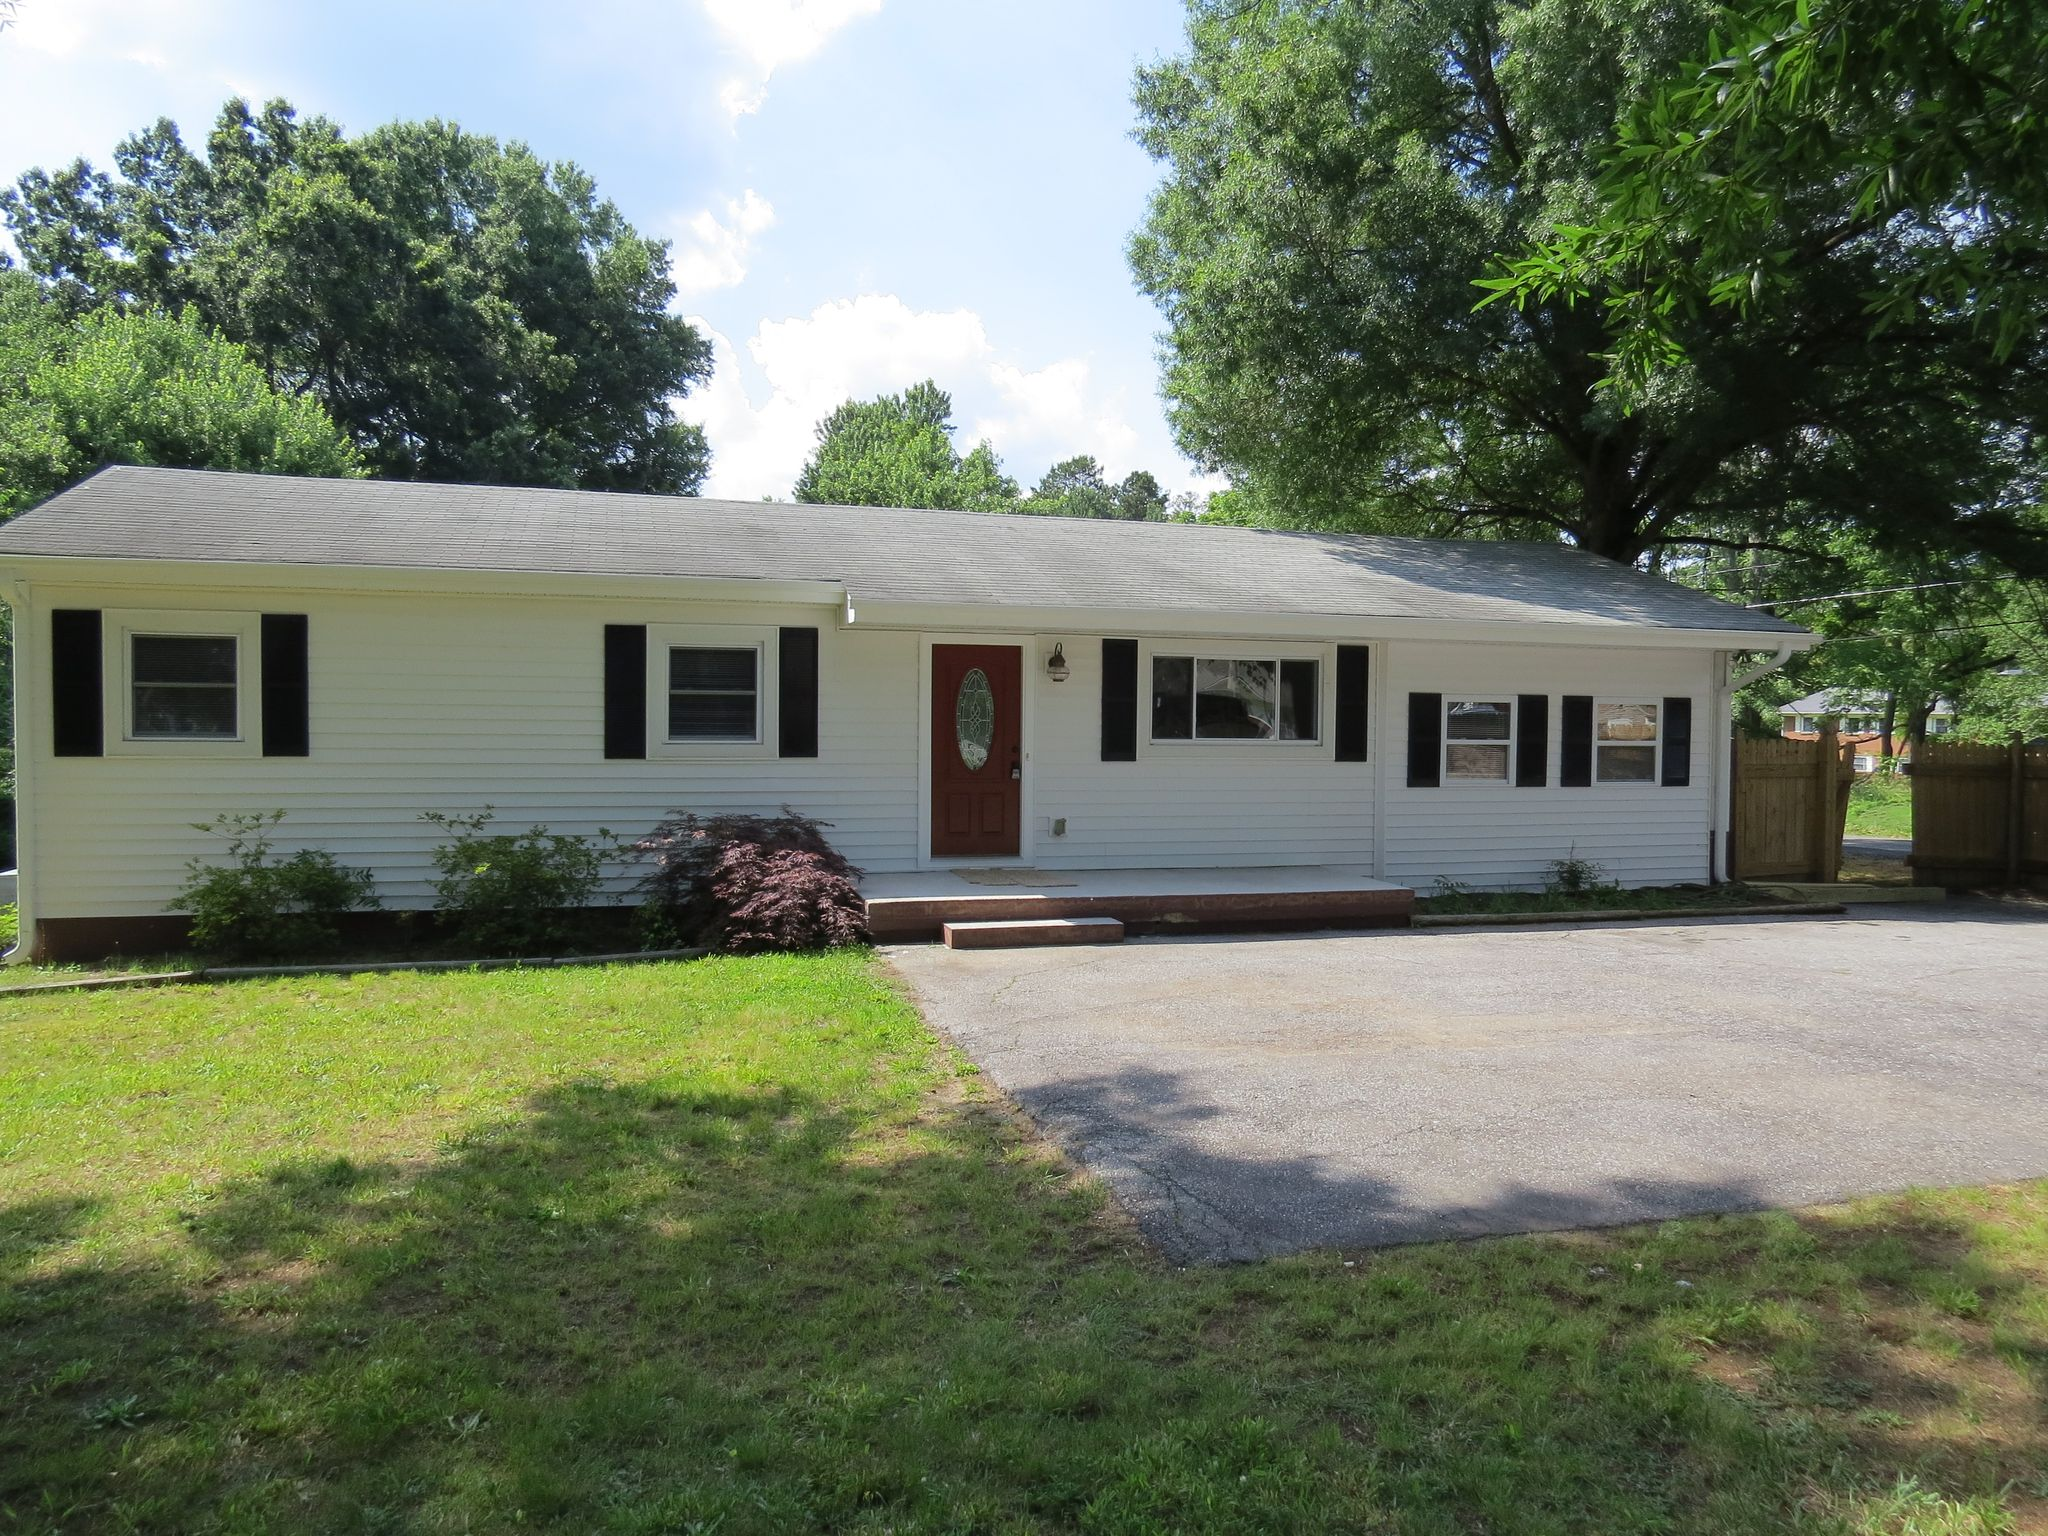 1845 gumtree rd winston salem nc recently sold